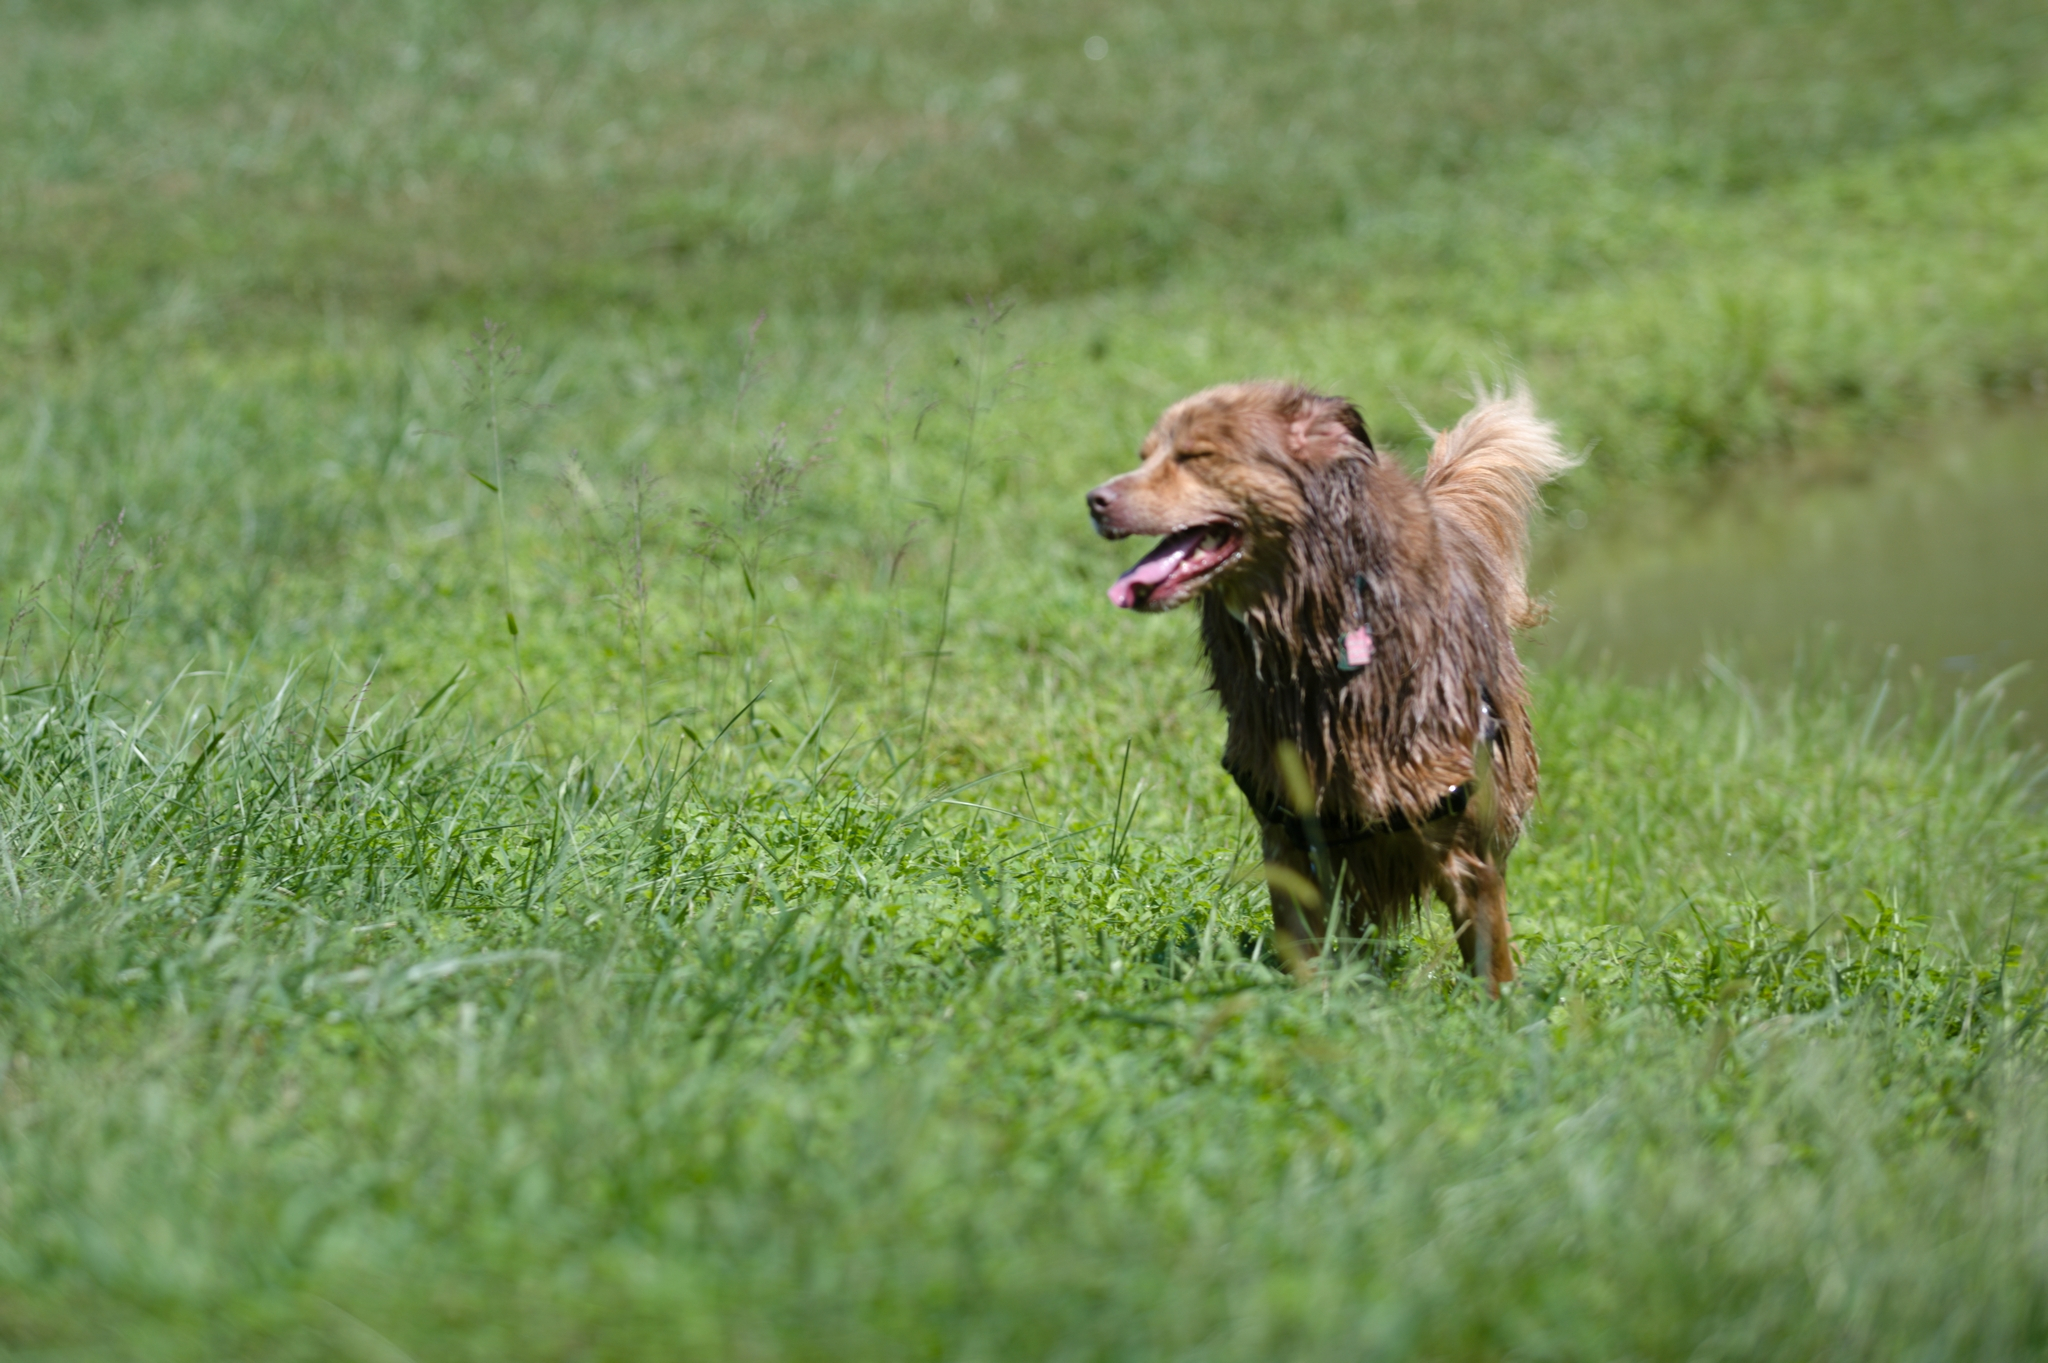 Wet dog running